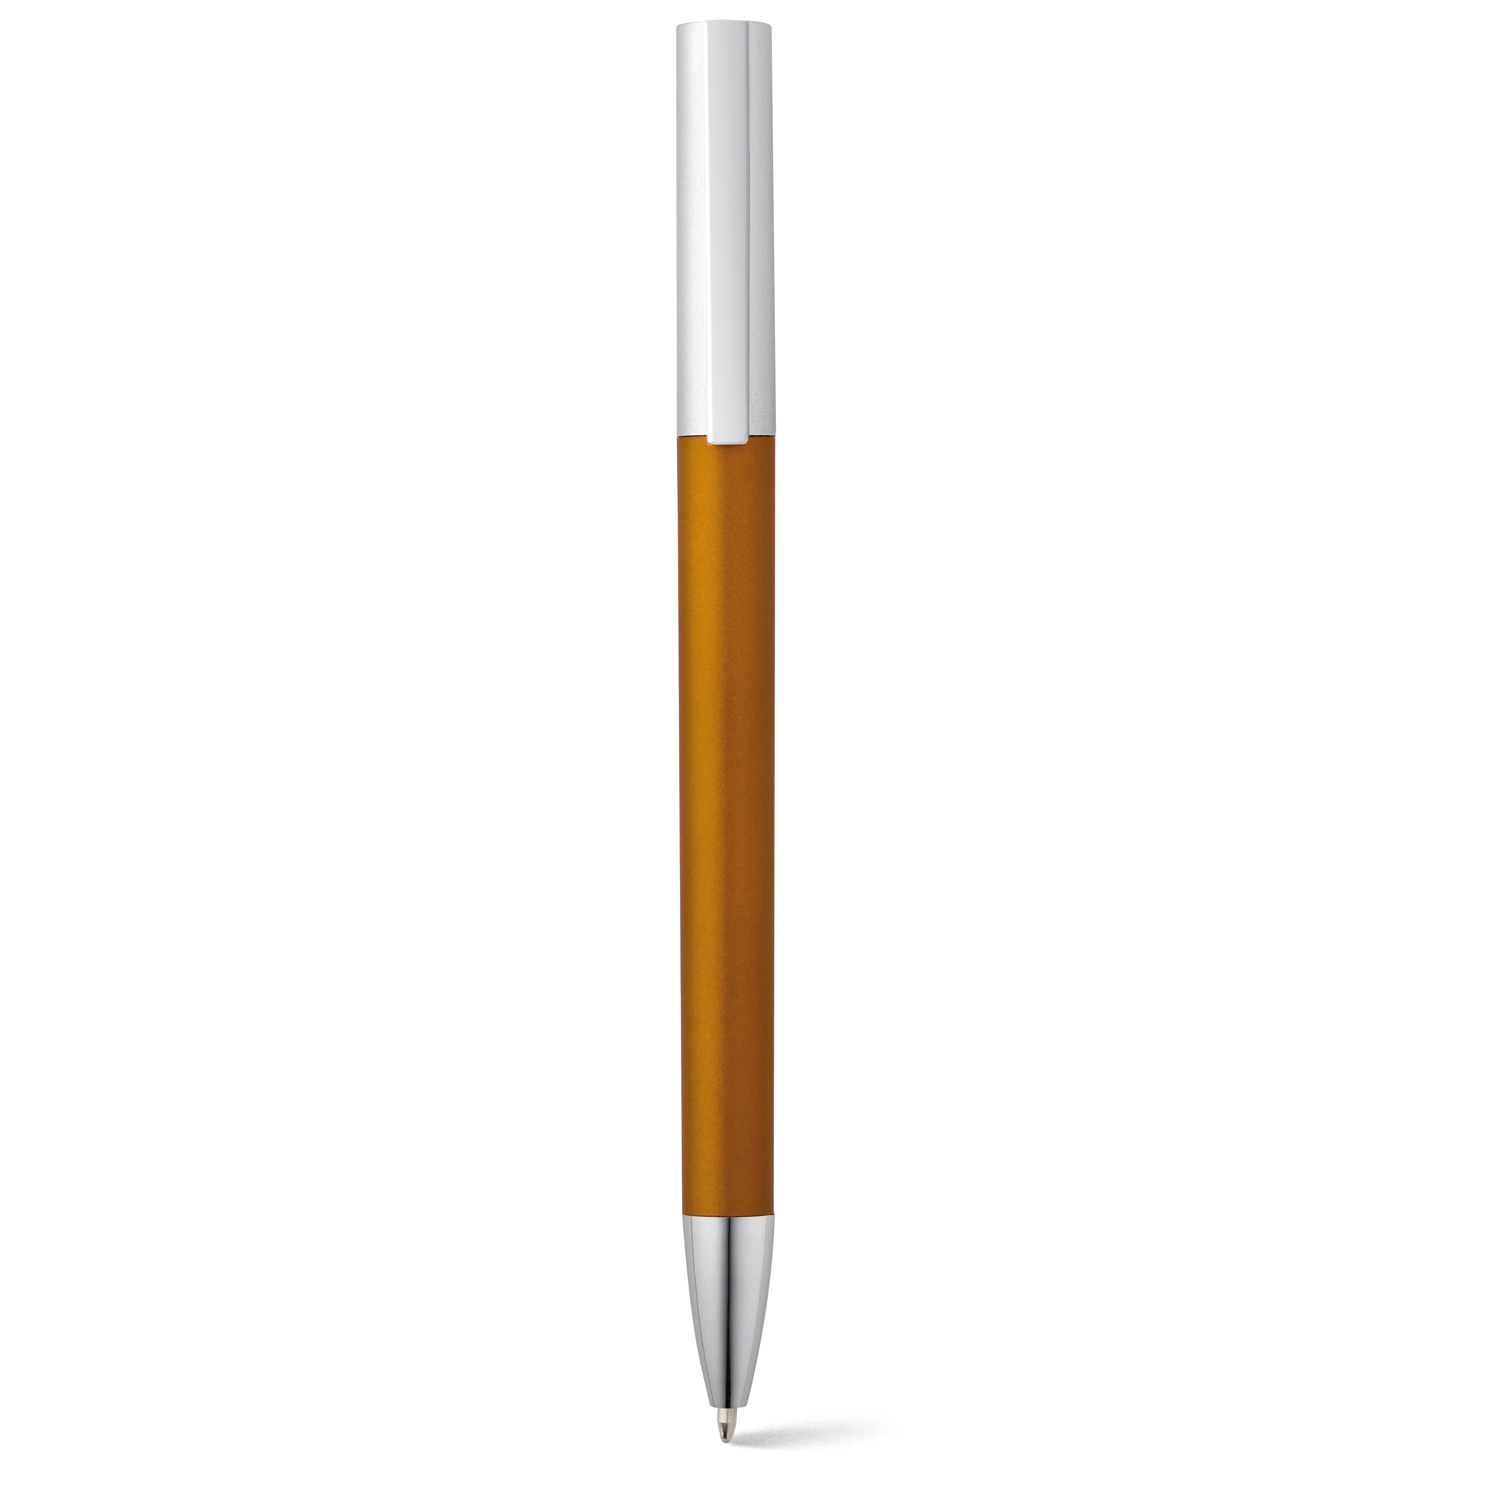 Pen 138 (Plastic pen with metal finishing) - hmi20138-11 (Orange)